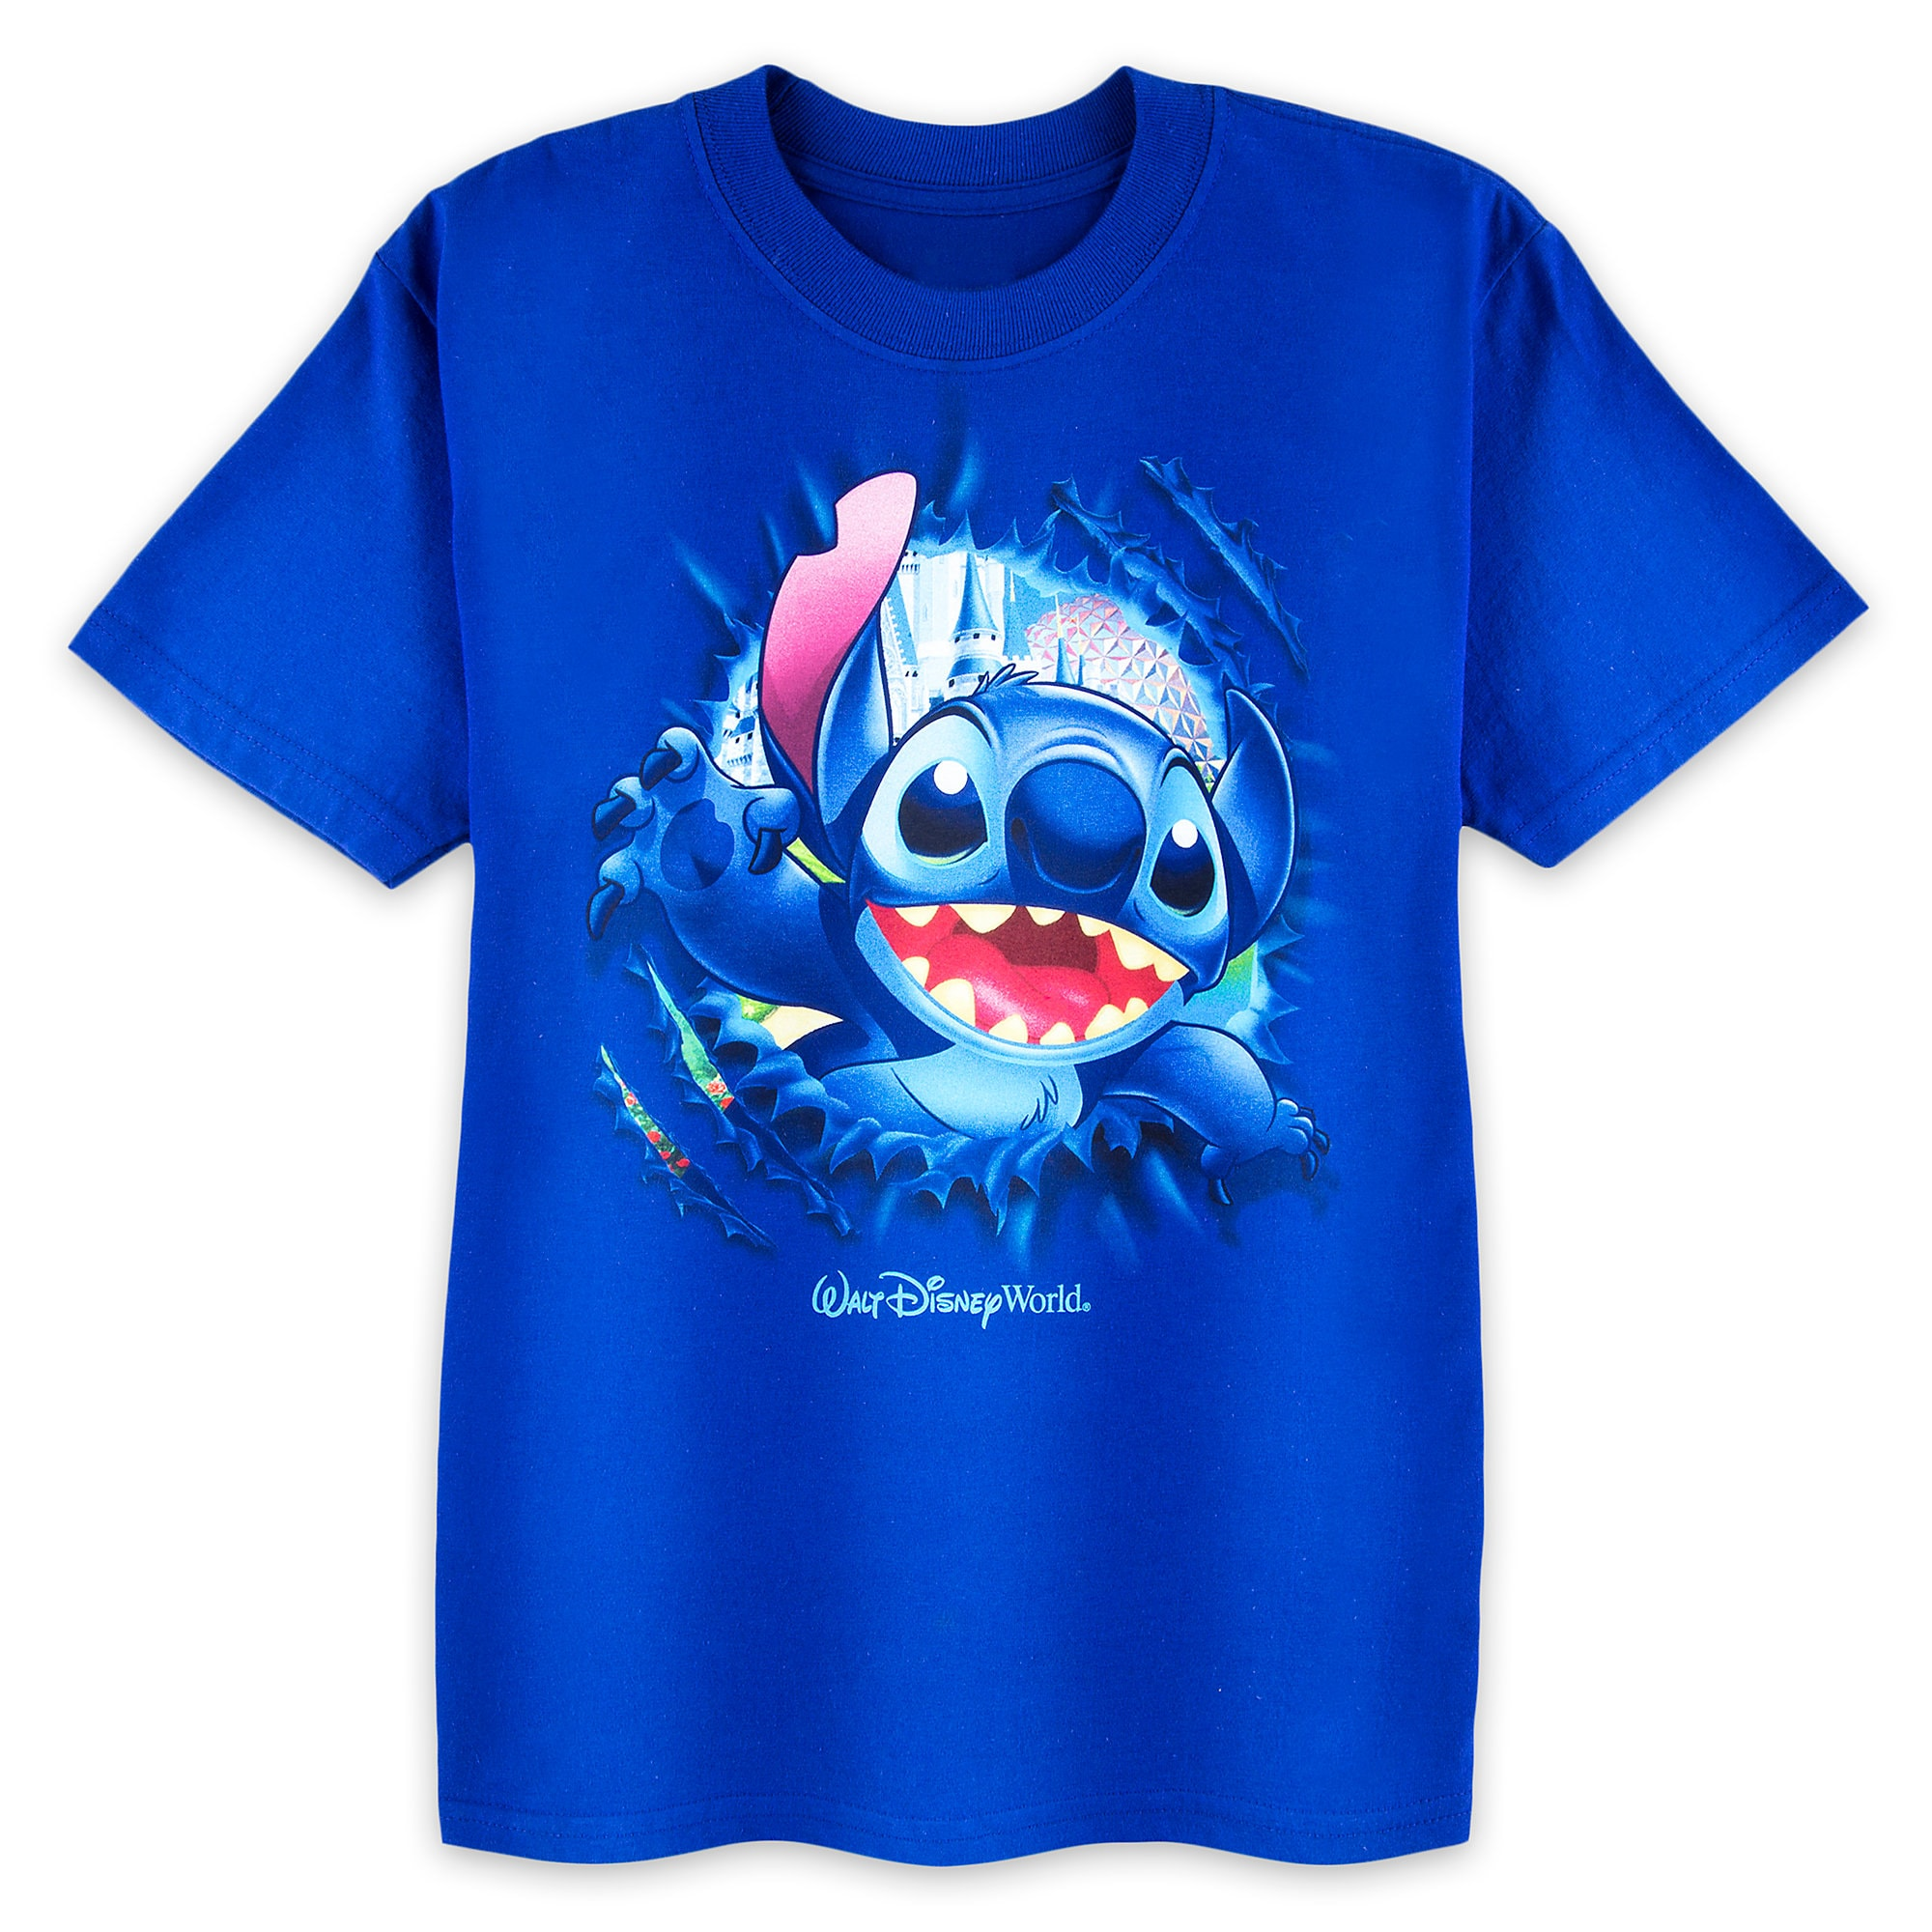 Stitch T-Shirt for Kids - Walt Disney World